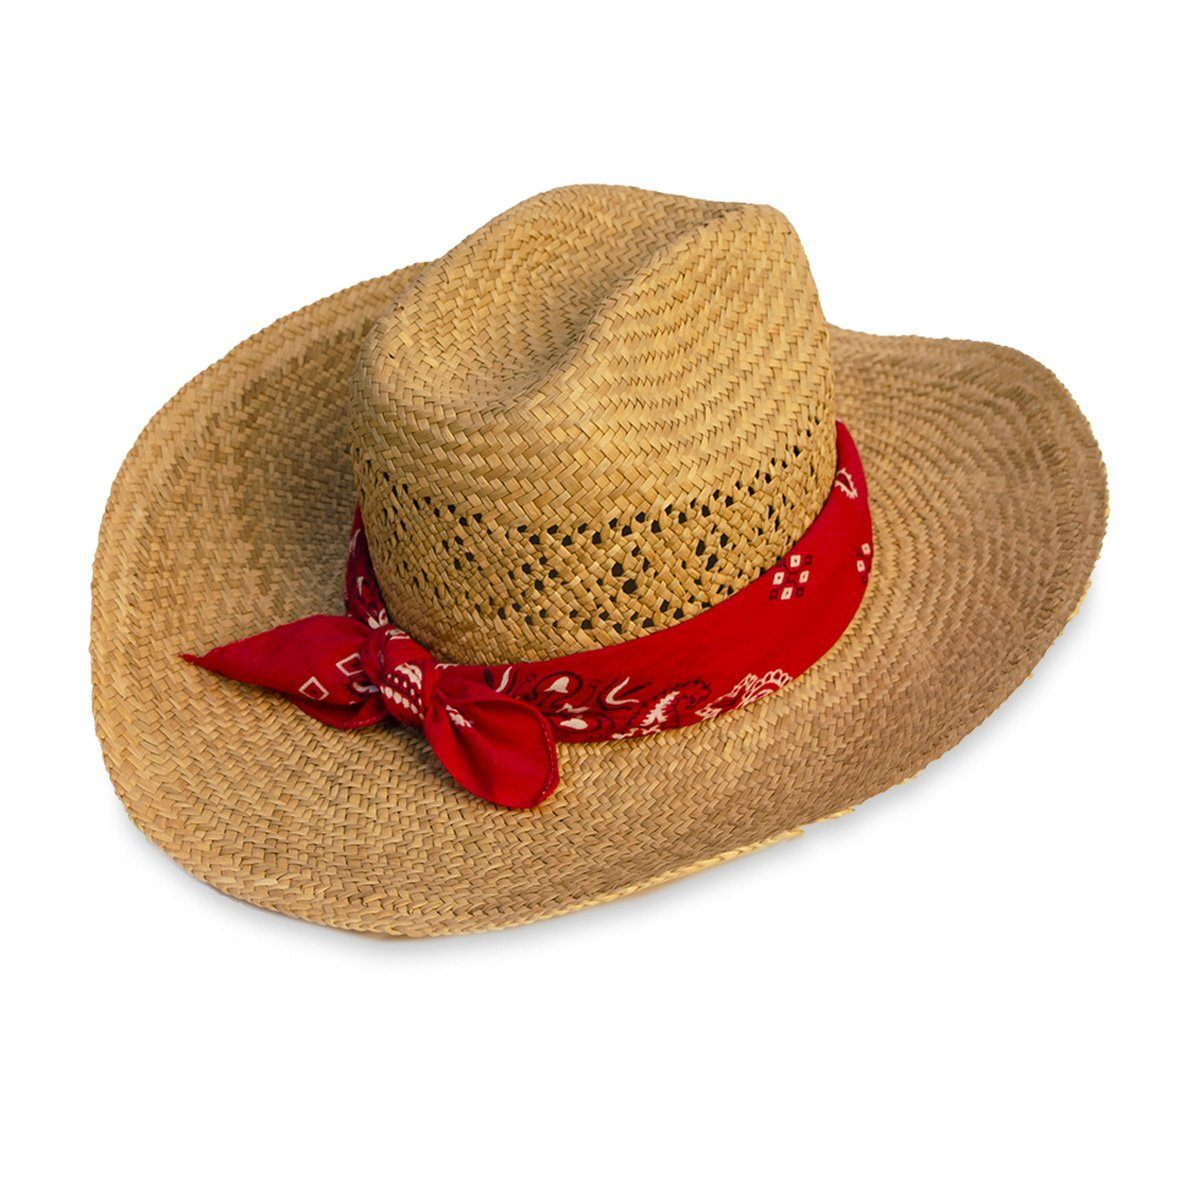 Vintage Straw Cowboy Hat with Red Bandana – MadgesHatbox Vintage 2be9c070905